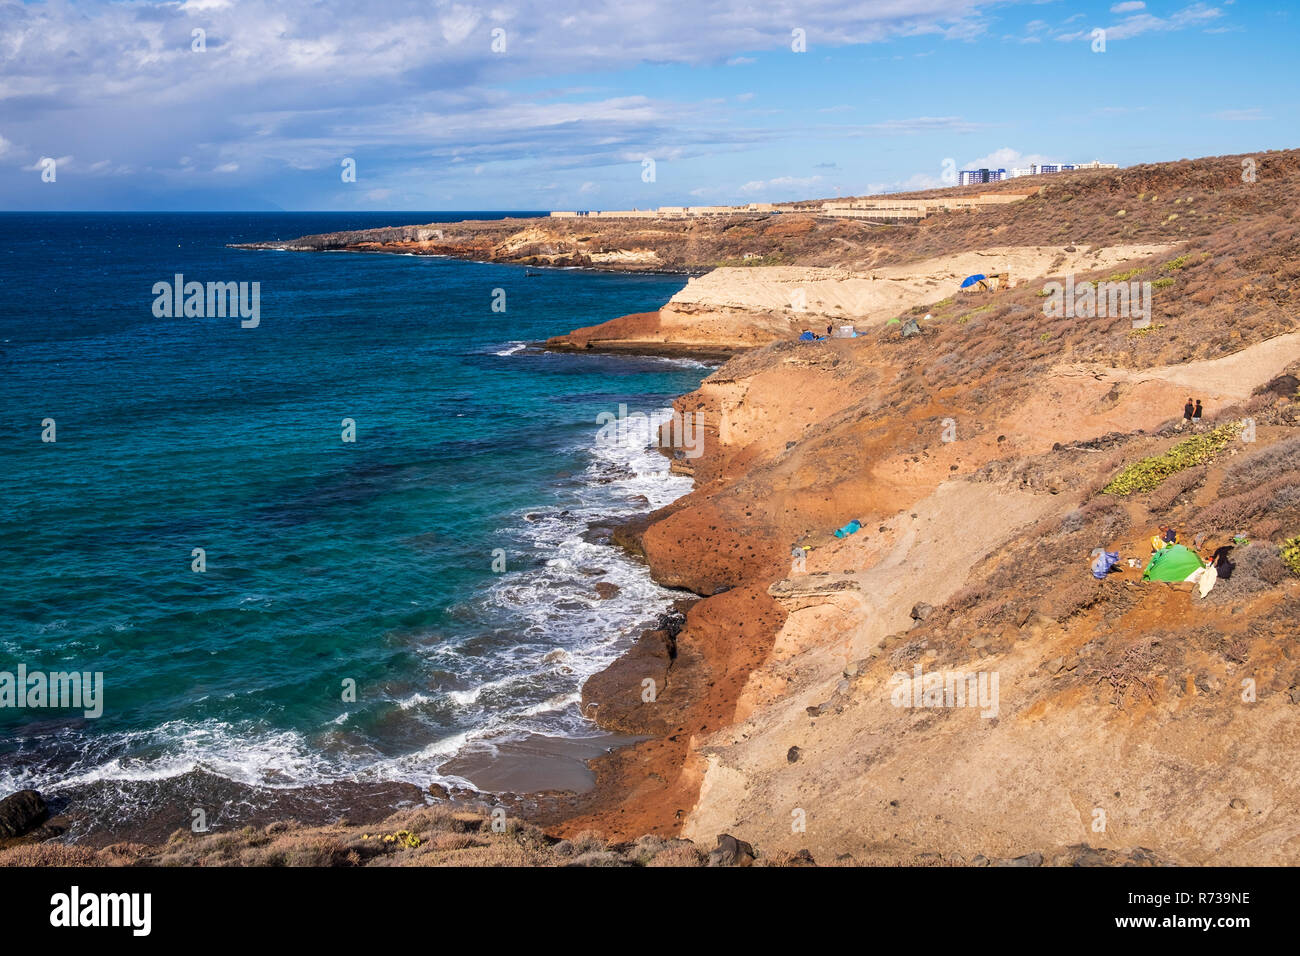 Undeveloped section of coastline in Costa Adeje looking towards Playa Paraiso and the Hard Rock hotel visible over the ridge, Tenerife, Canary Islands - Stock Image